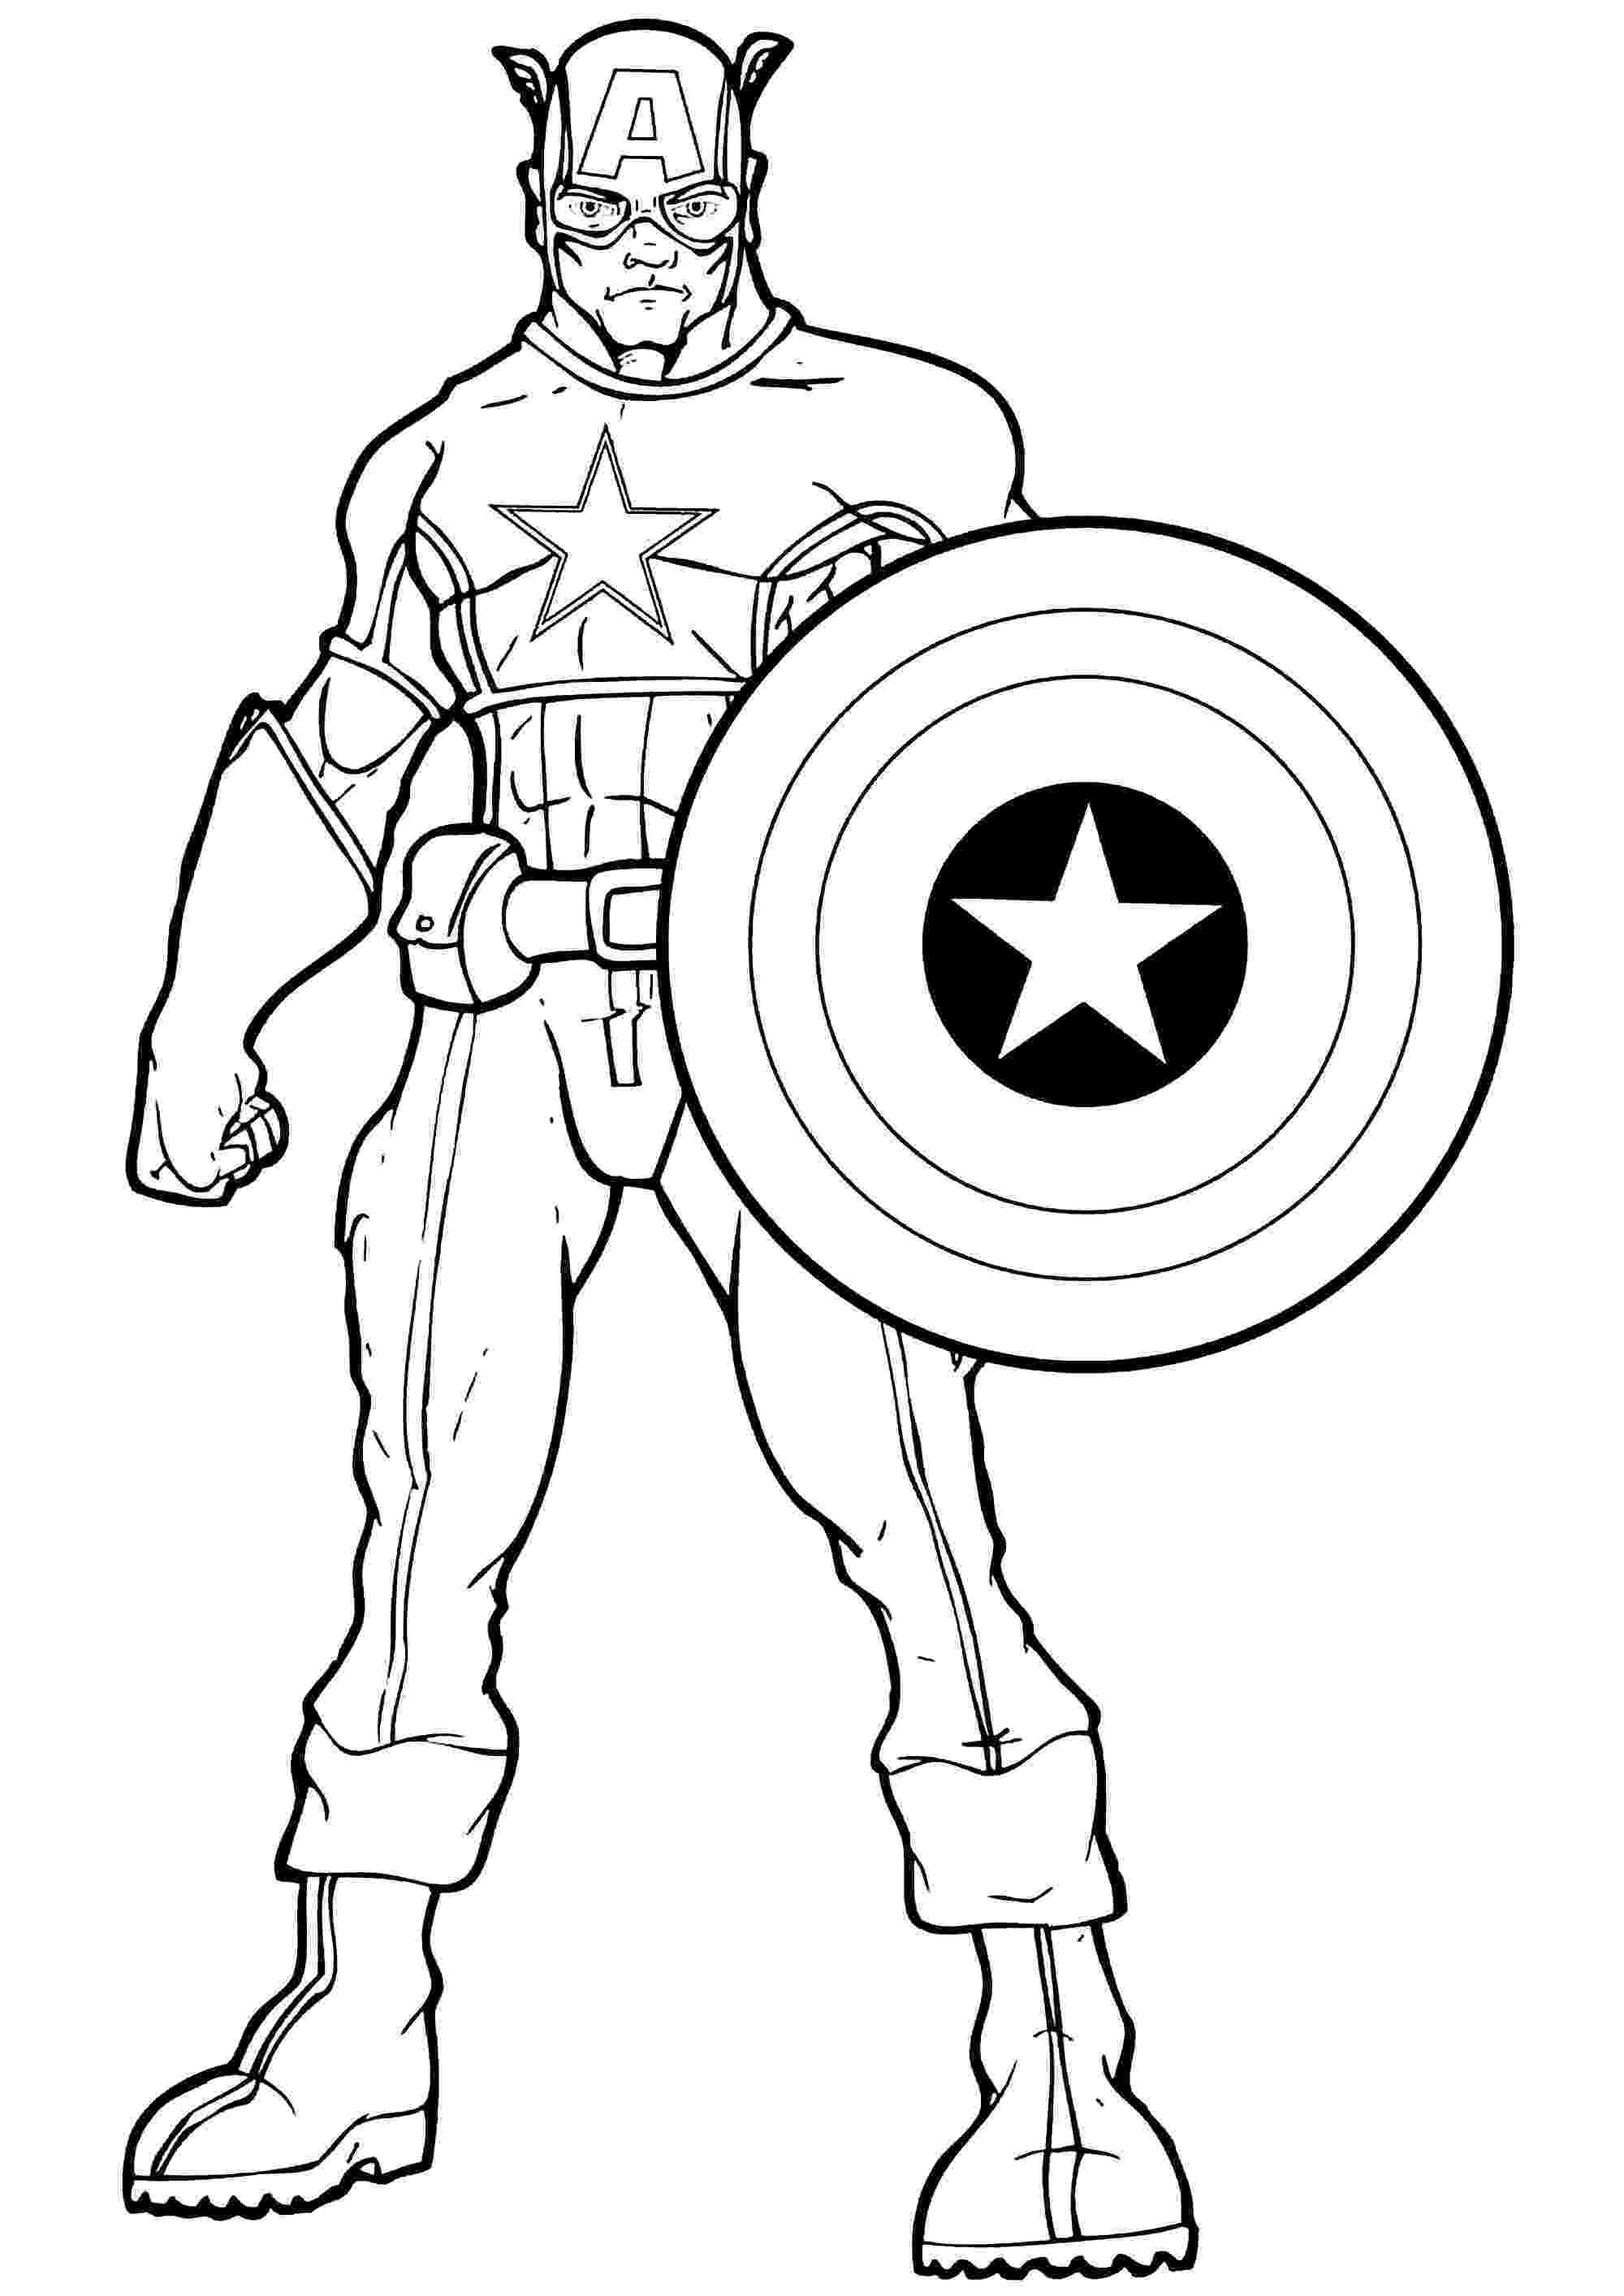 free printable captain america coloring pages captain america learn to coloring america free printable pages coloring captain